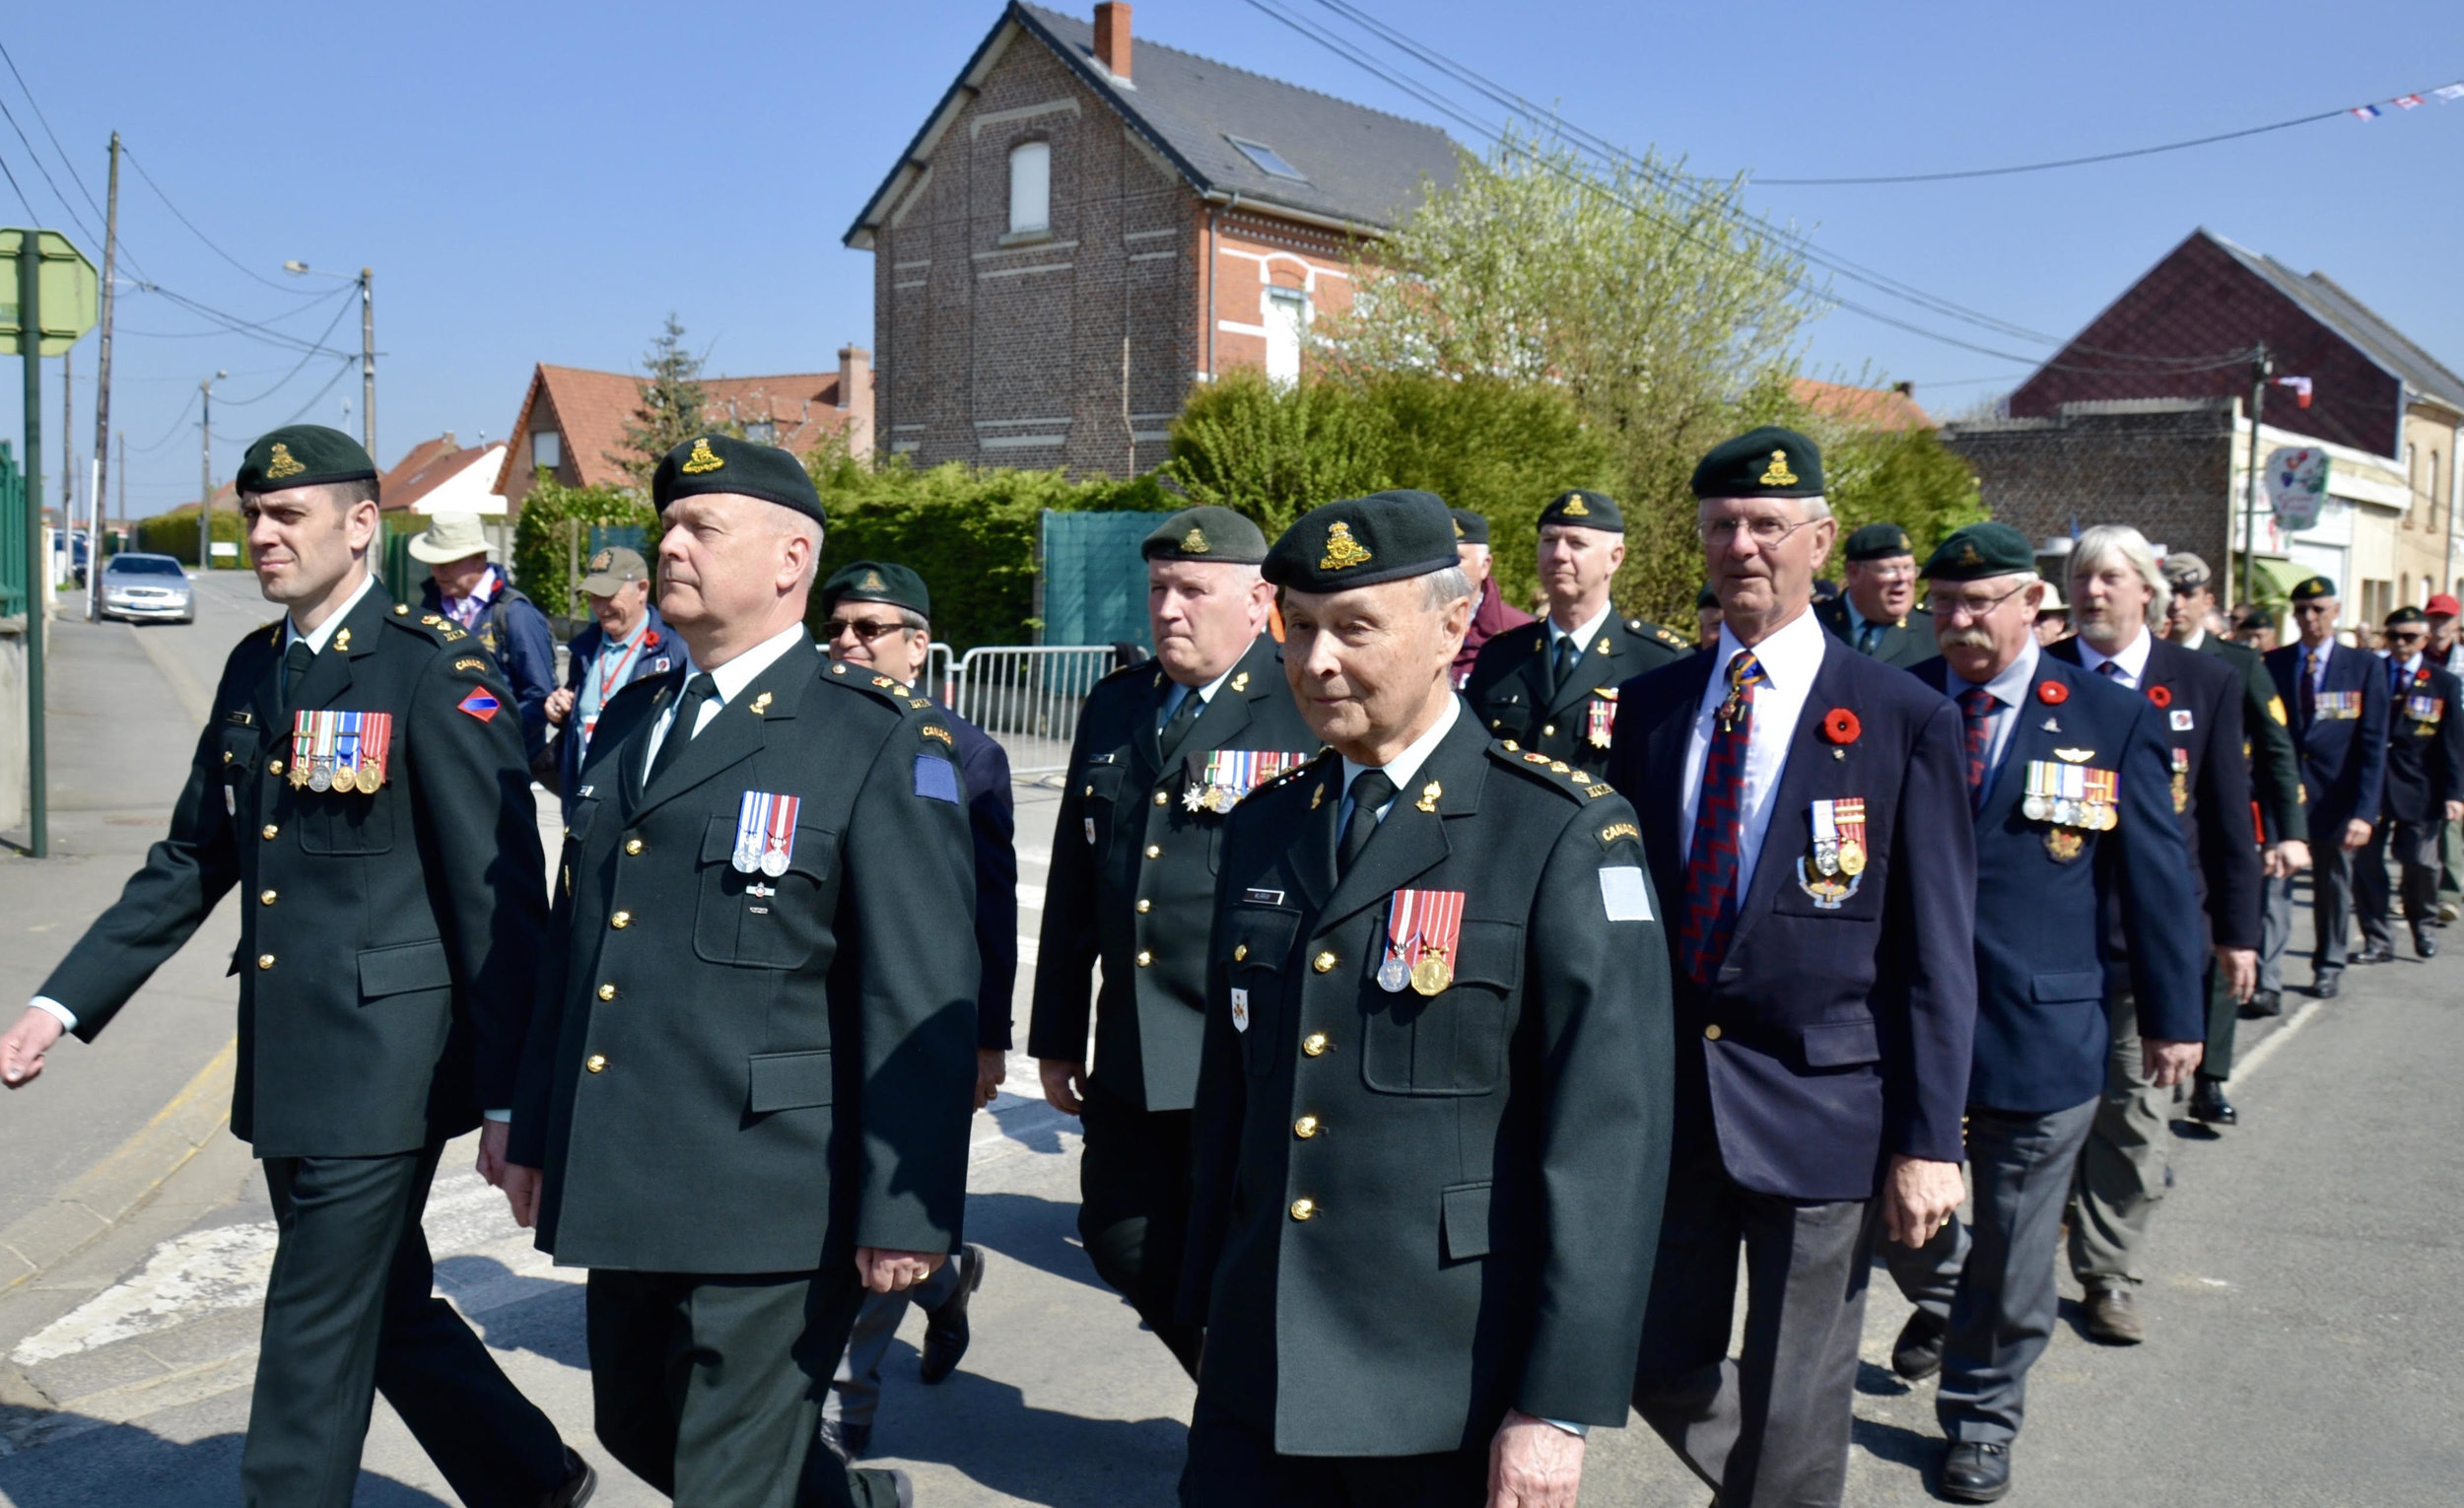 Gunners on parade: (left to right) LCol Sonny Hatton, HLCol Steve Gregory, HCol Charles de Kovachich, Maj John Stewart, HCol Dale Murray, LCol Lance Knox, MGen (retd) Stu McDonald, HCol John Irving, Brad Woolven, Scott Wisdahl, LGen (retd) Mike Jeffrey, LCol (retd) Bob Elliott. Photo courtesy of Major Richard Gratton.